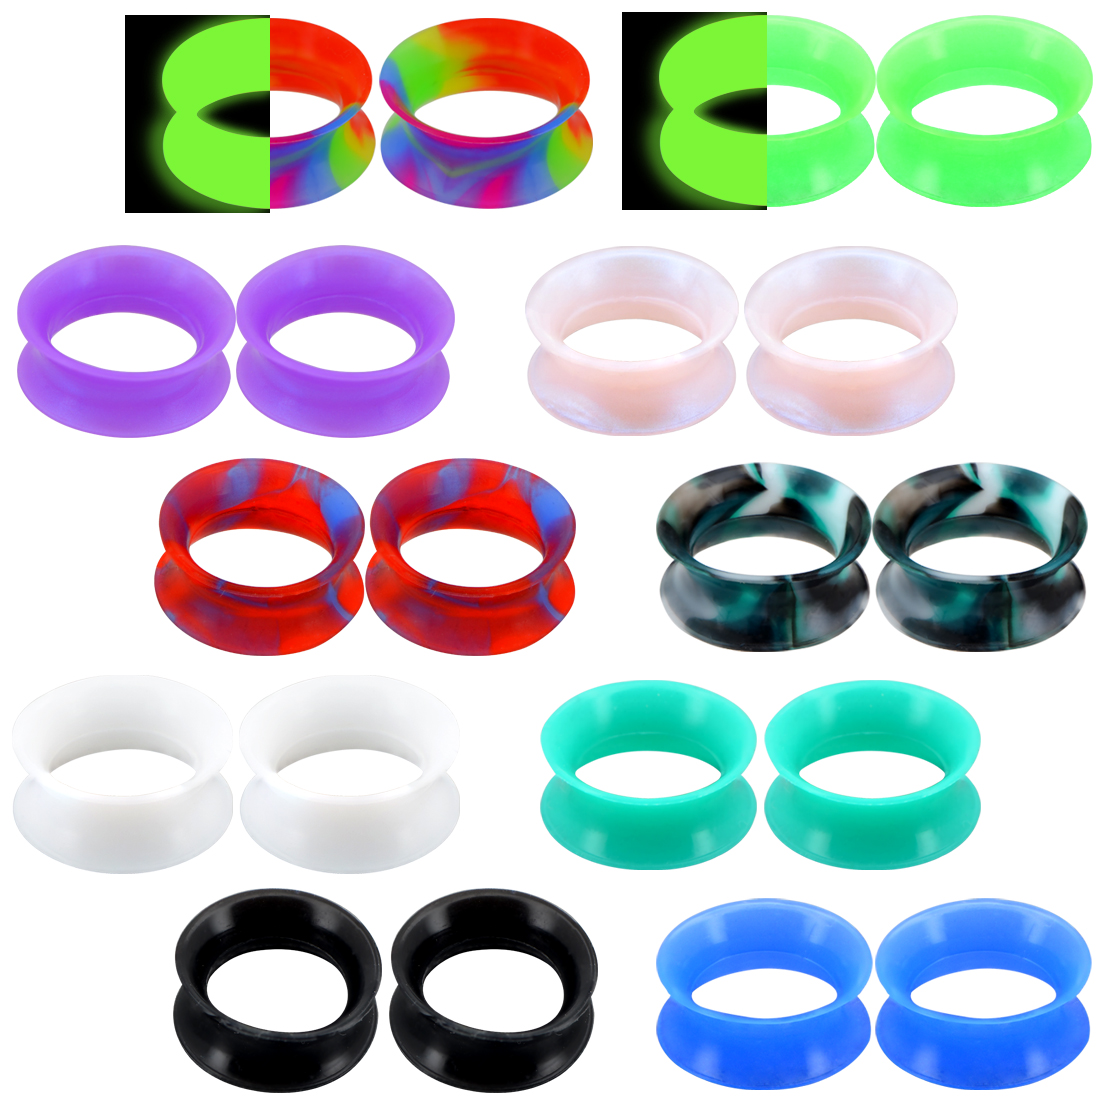 2pc Flesh Skin Colored Ear Gauges Plugs Tunnels Expanders Stretcher Silicone Body Piercing Jewelry